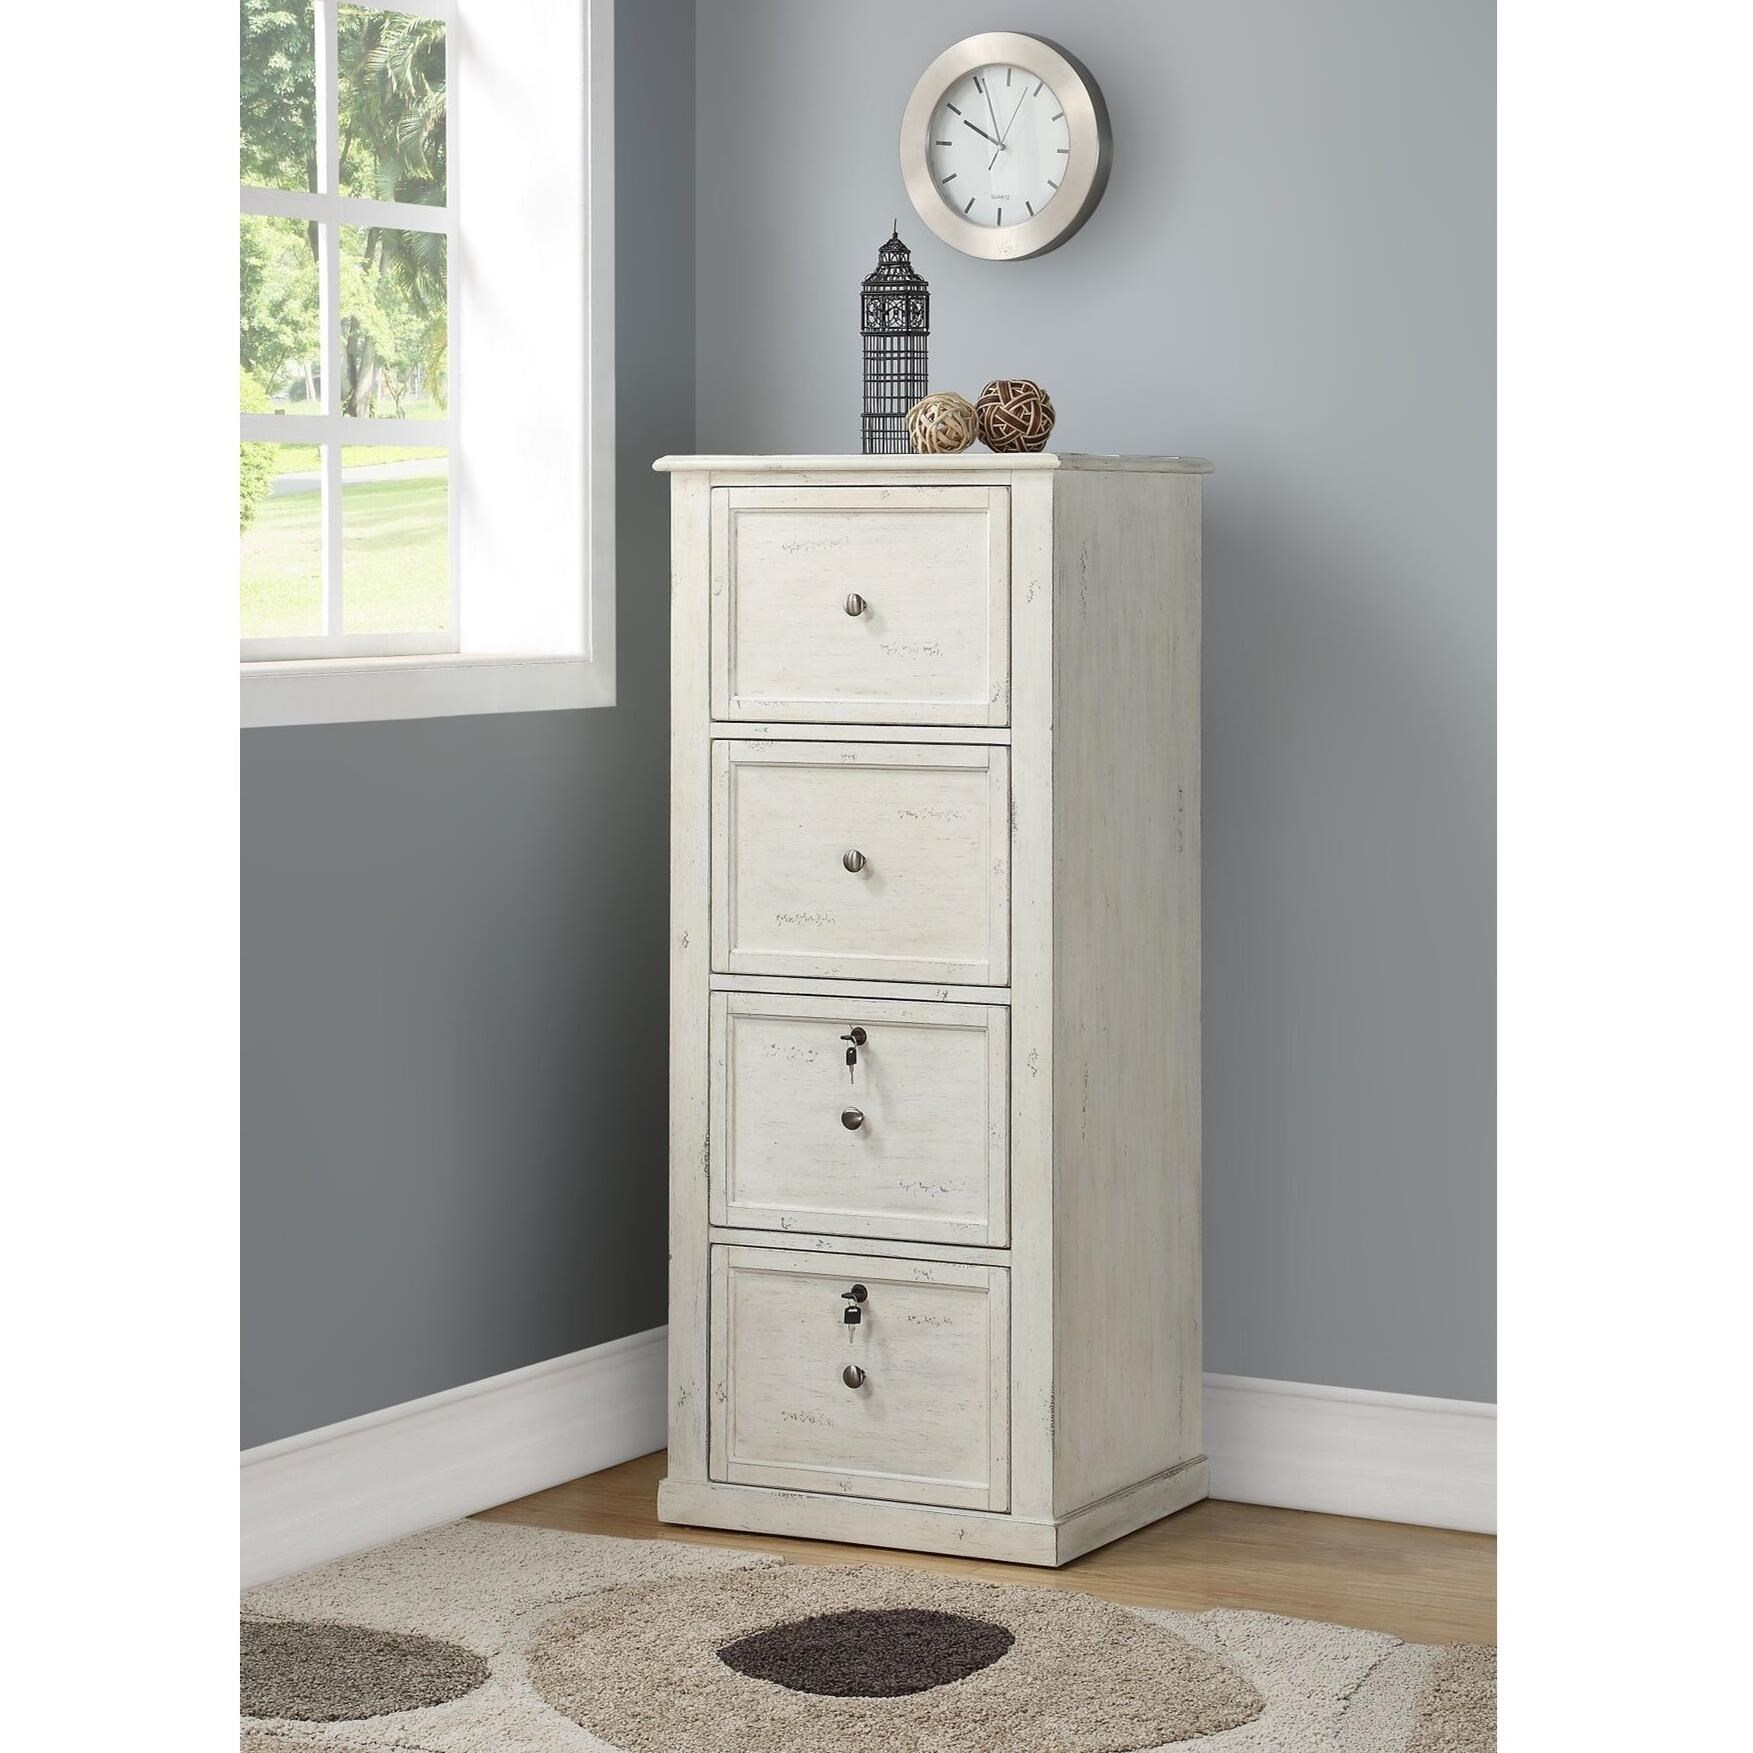 Superbe Parker House Hilton Tall 4 Drawer File Cabinet